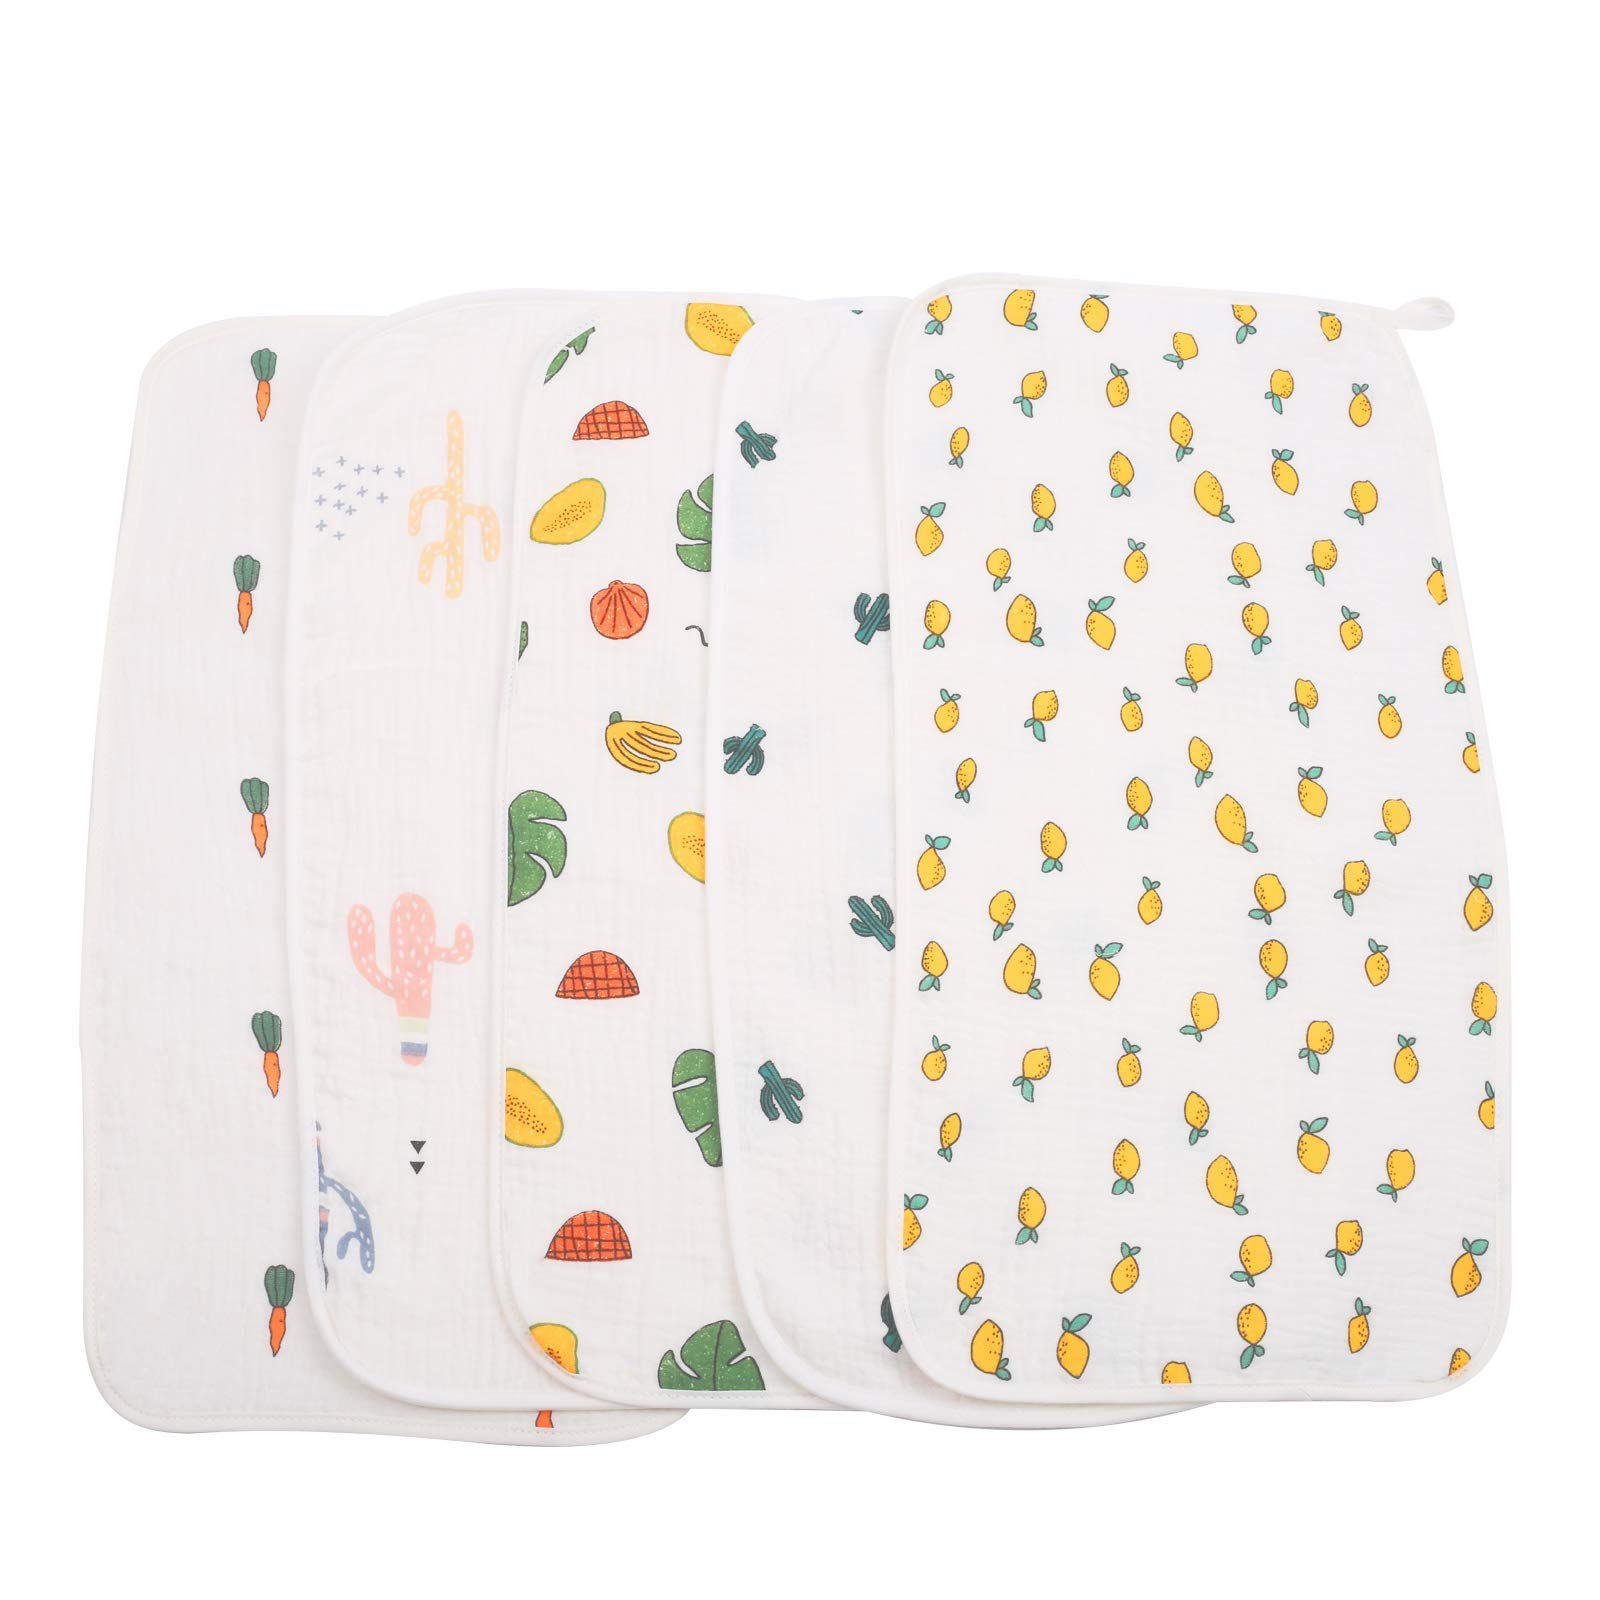 Muslin Baby Burp Cloths 5 Pack Burp Cloth Sets for Unisex 20 by 10 Inches 4 Layers Baby Burping Rags for Boys and Girls